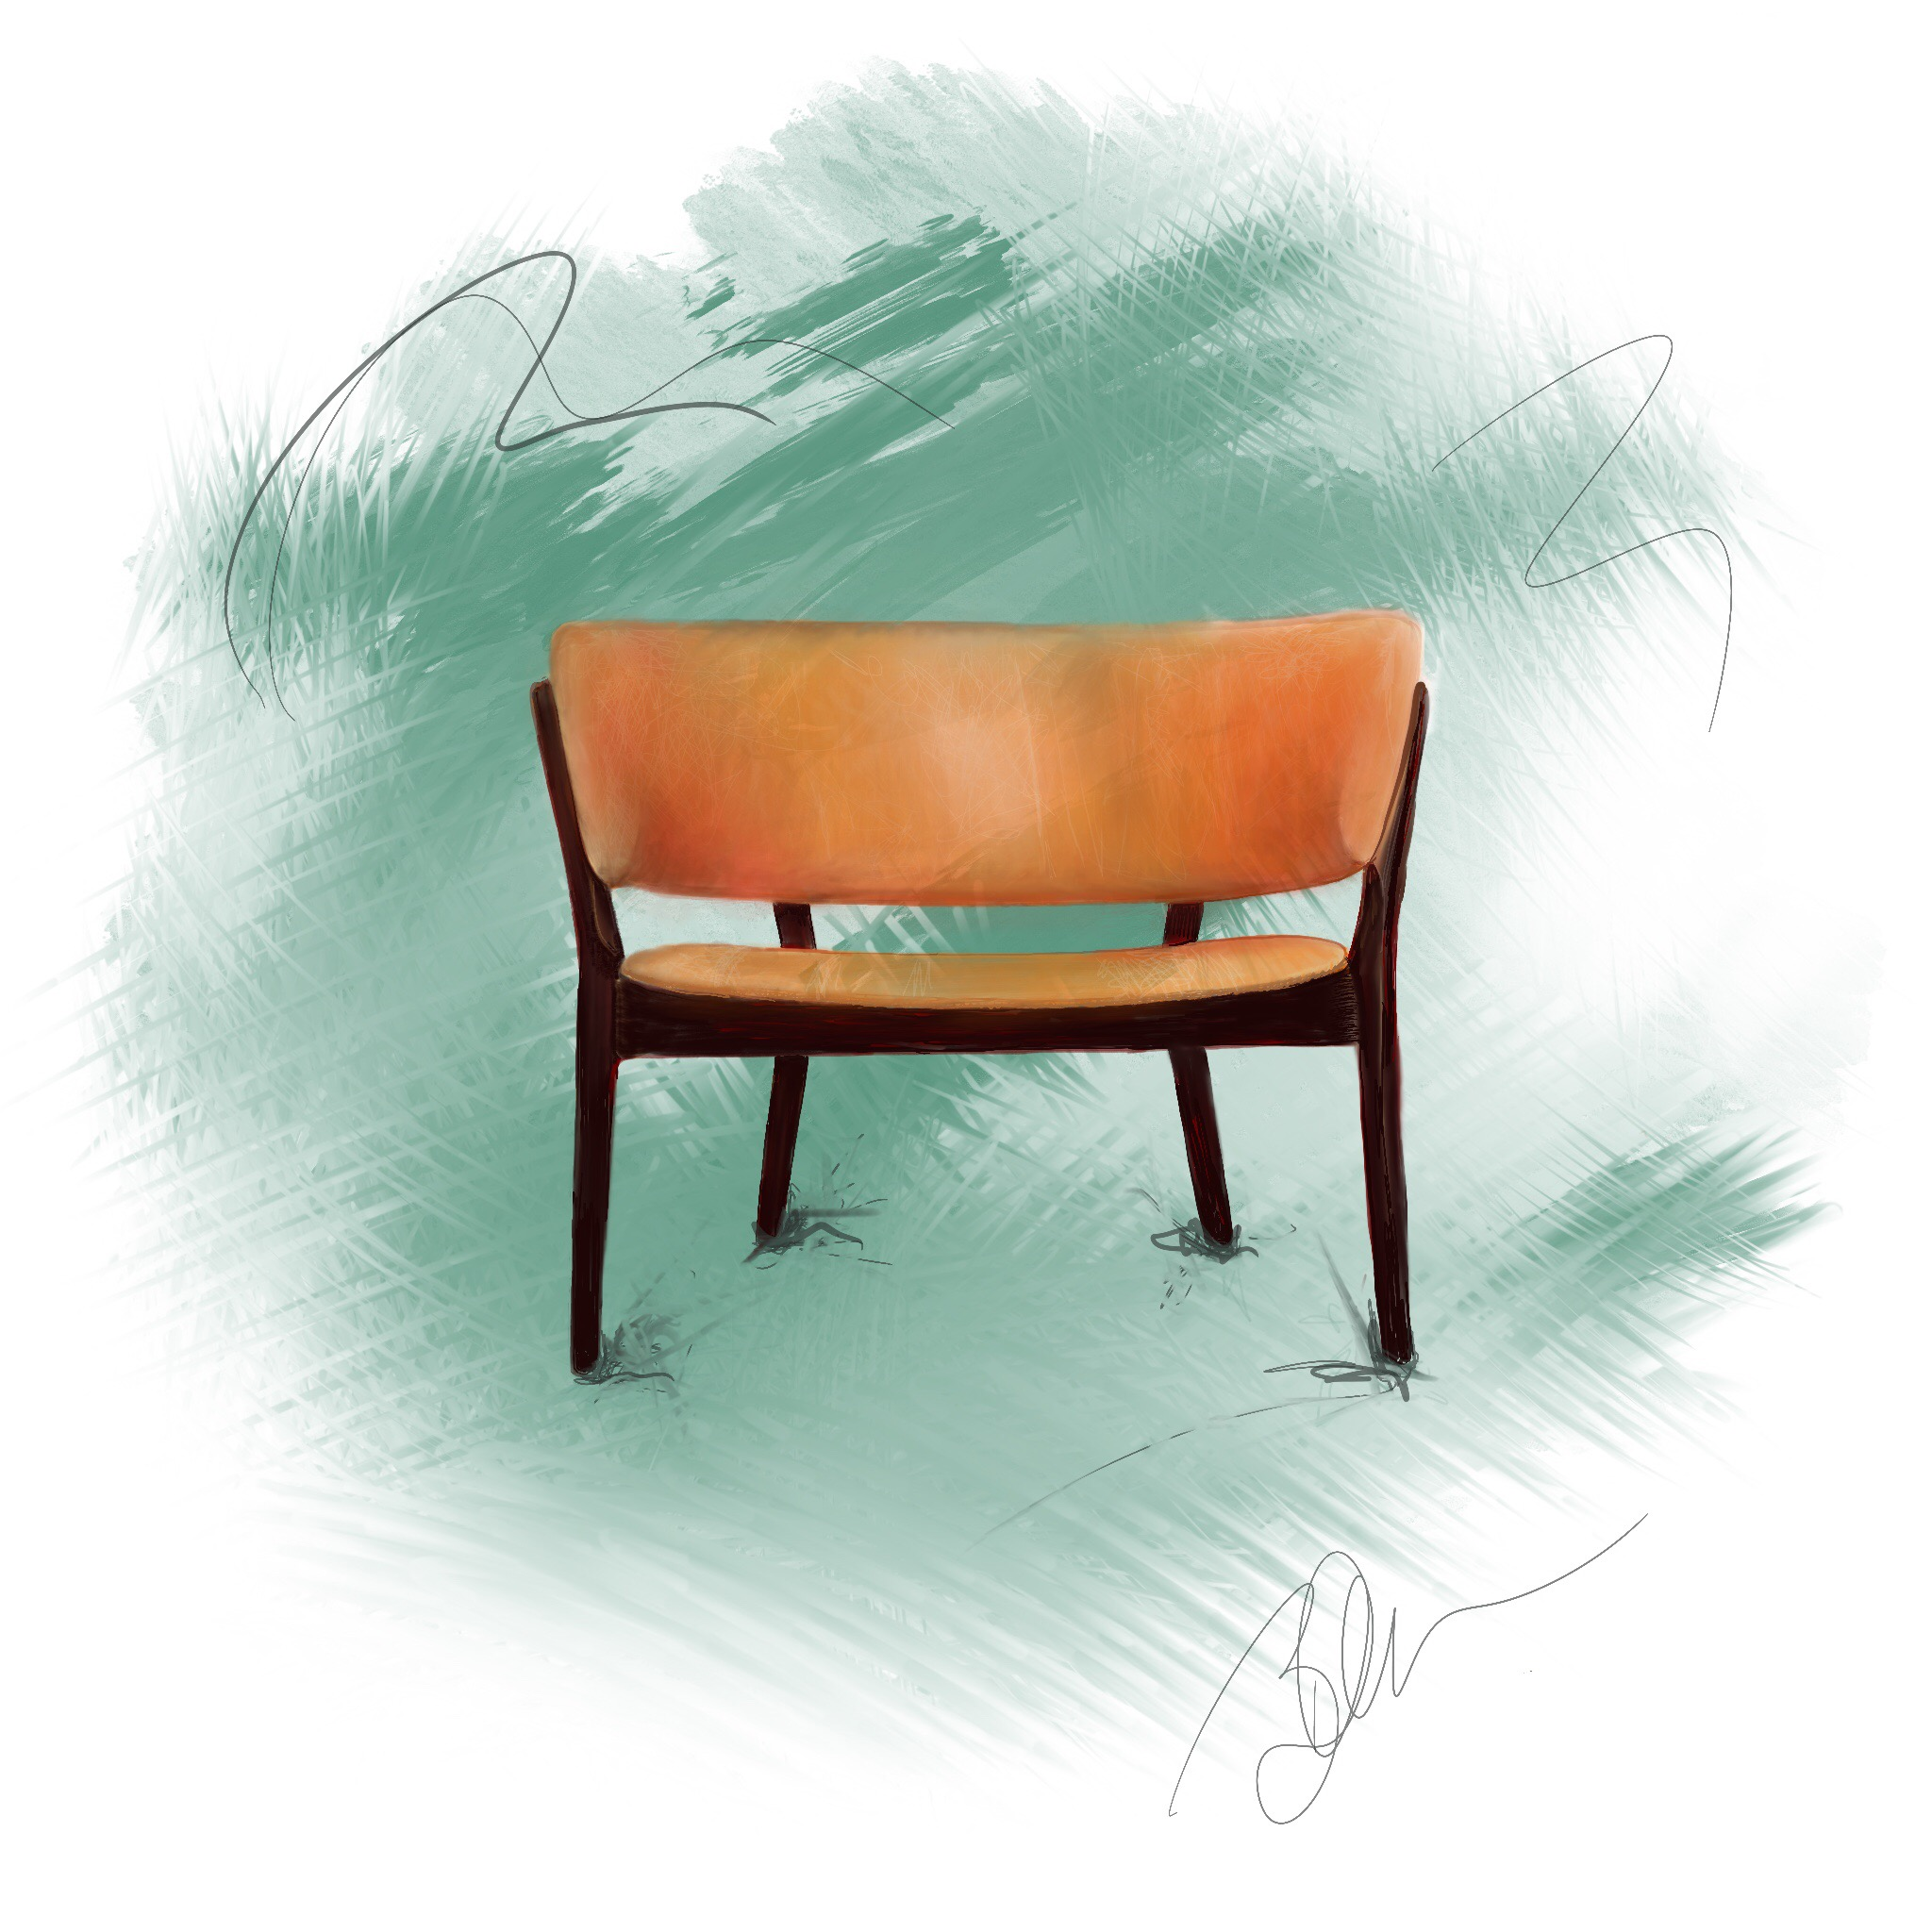 MCM Chair Digital Drawing ©Beth Ortman